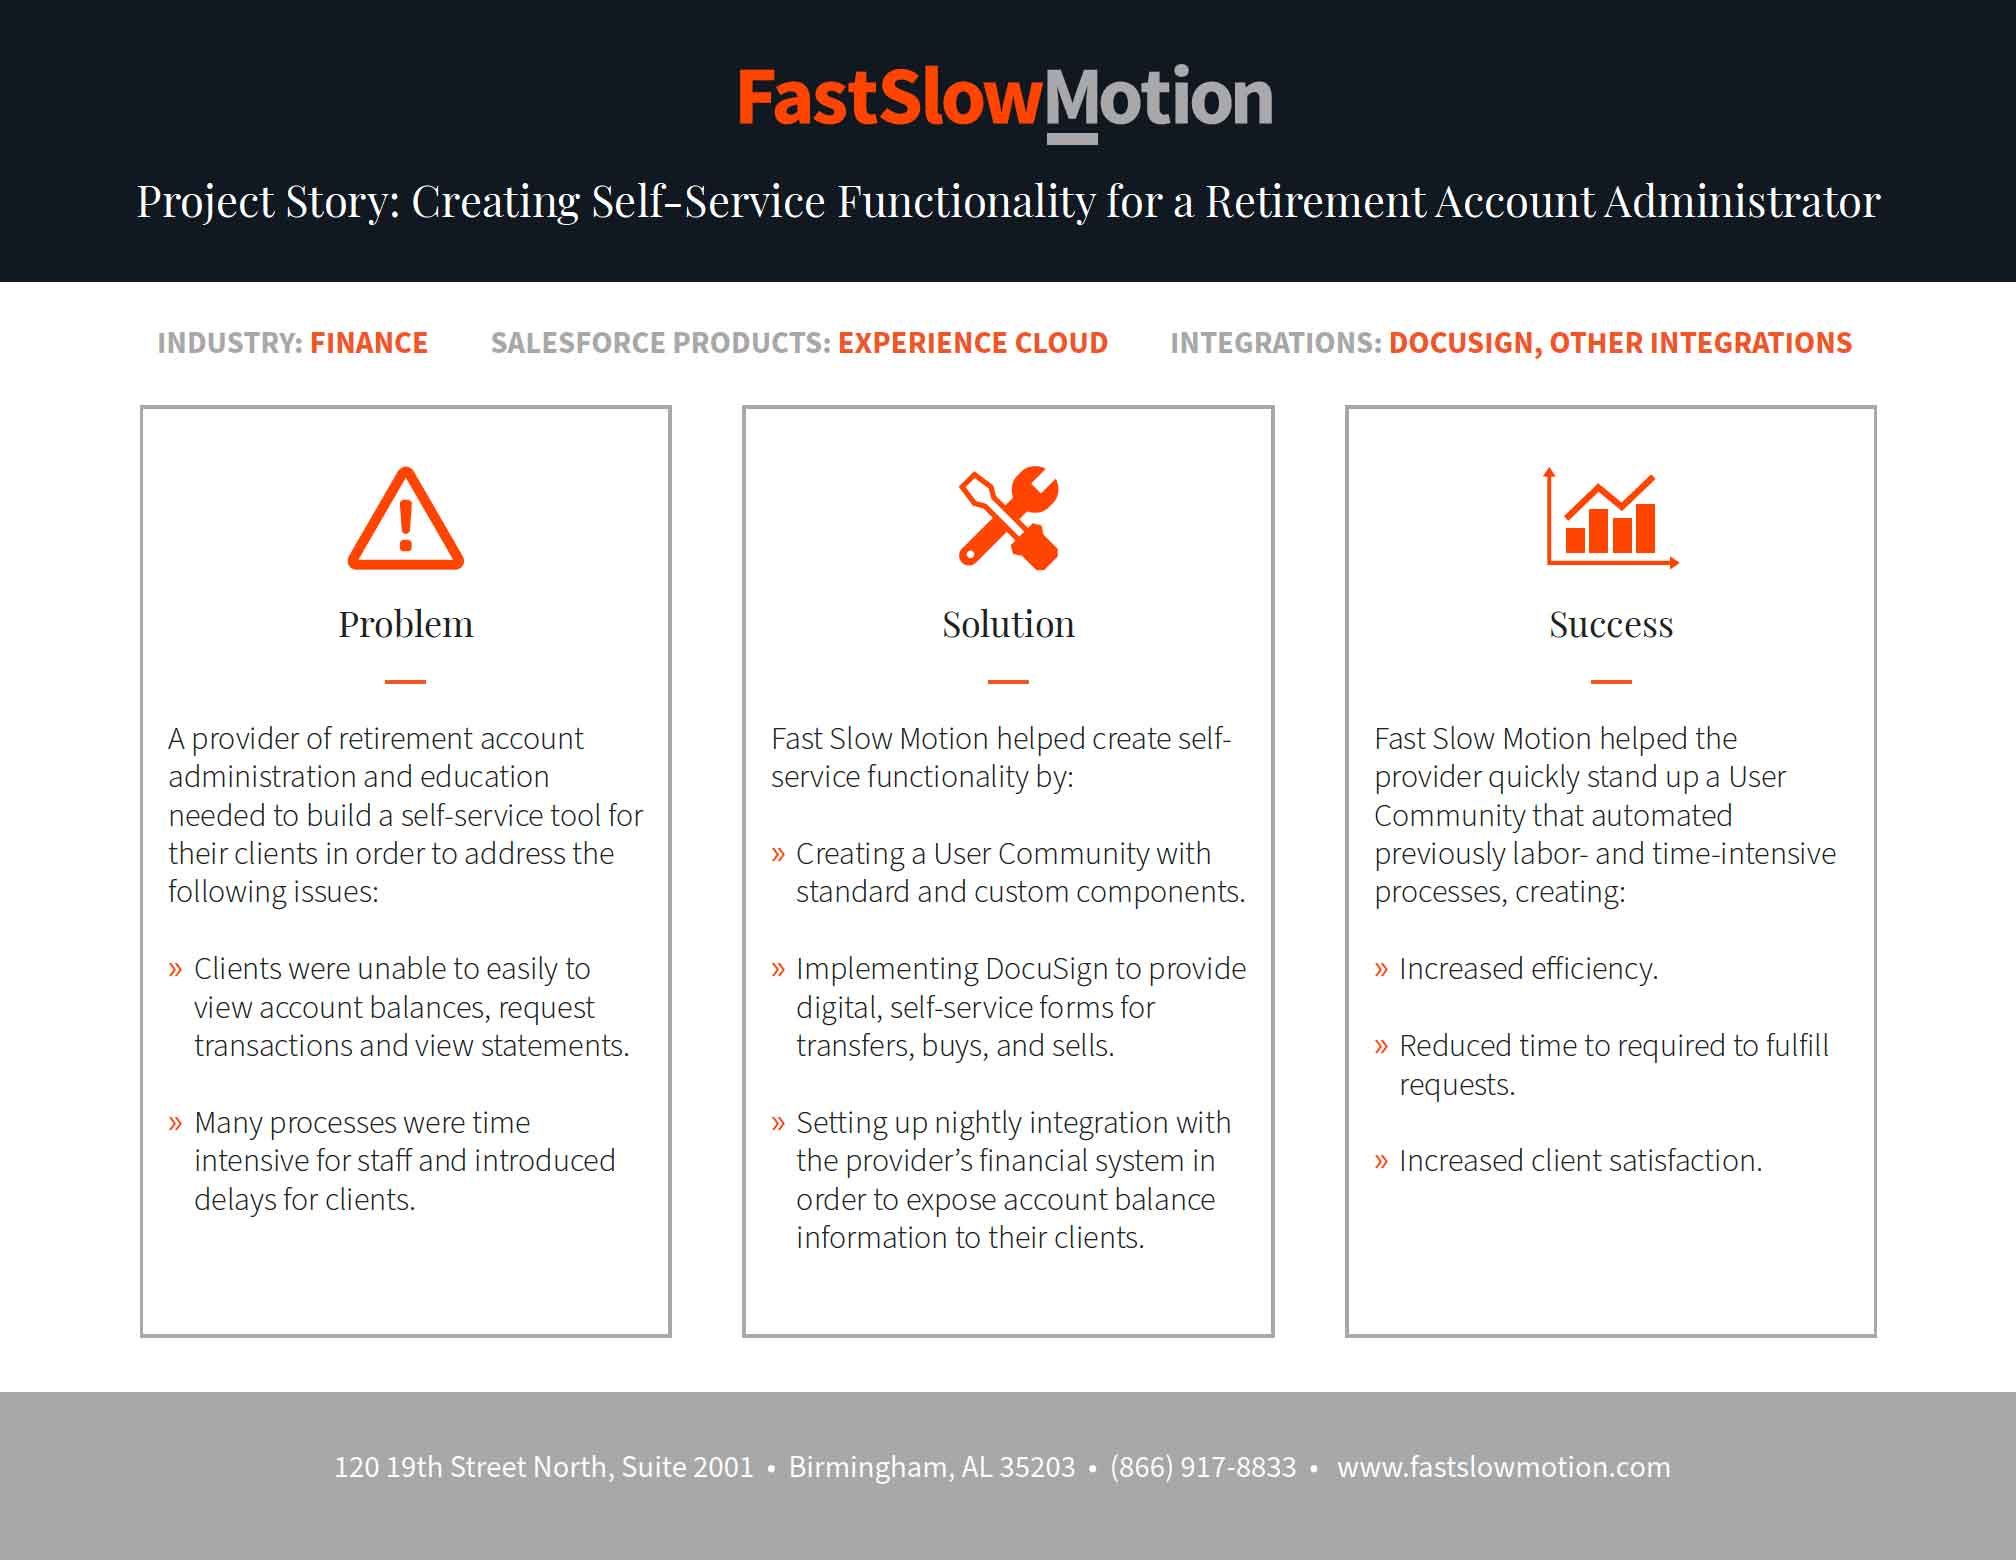 Project Story: Creating Self-Service Functionality for a Retirement Account Administrator